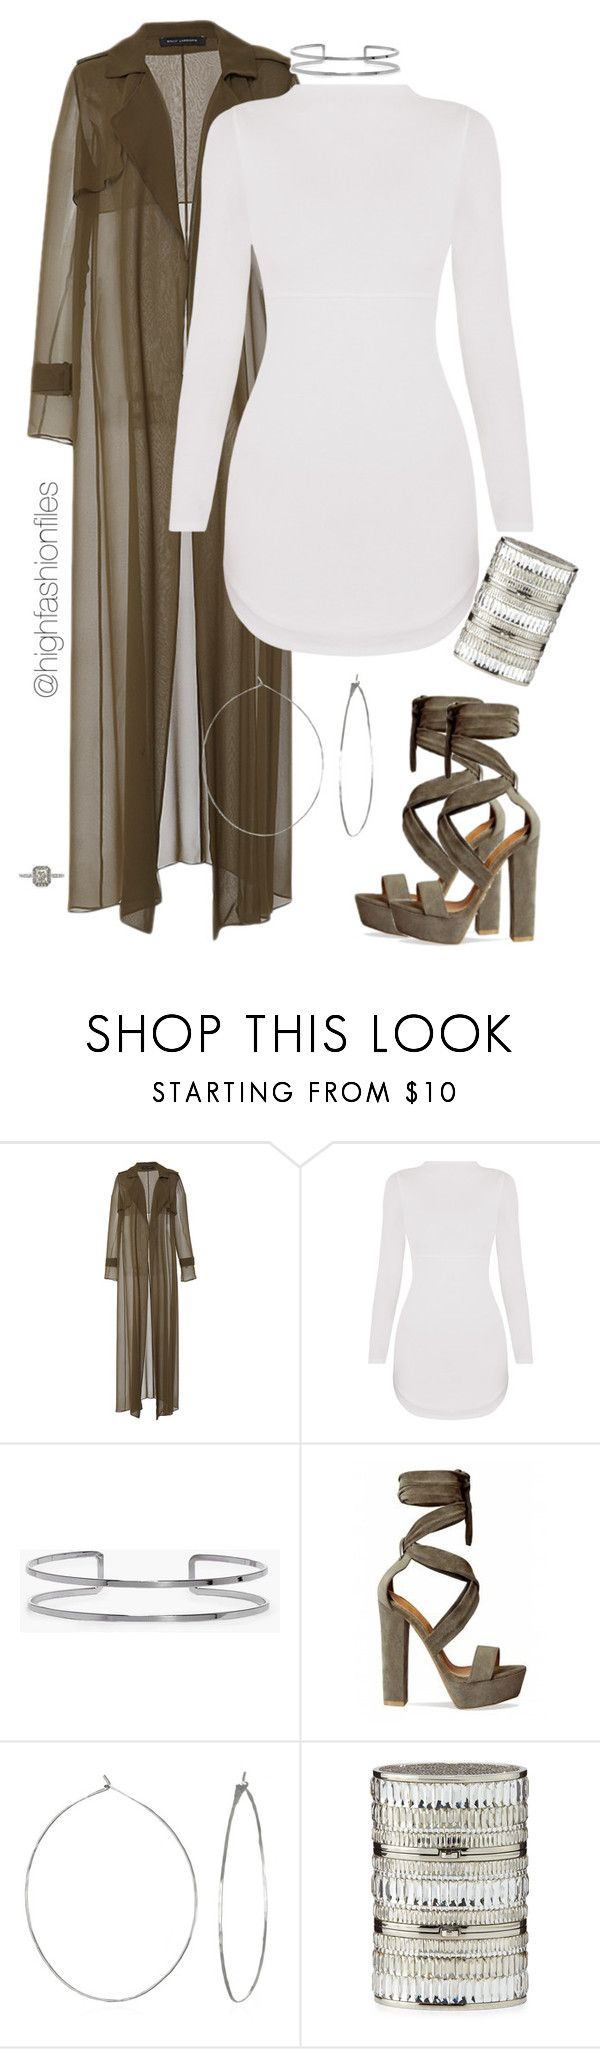 """Party Time"" by highfashionfiles ❤ liked on Polyvore featuring Sally Lapointe, Boohoo, Phyllis + Rosie, Judith Leiber and Mark Broumand"